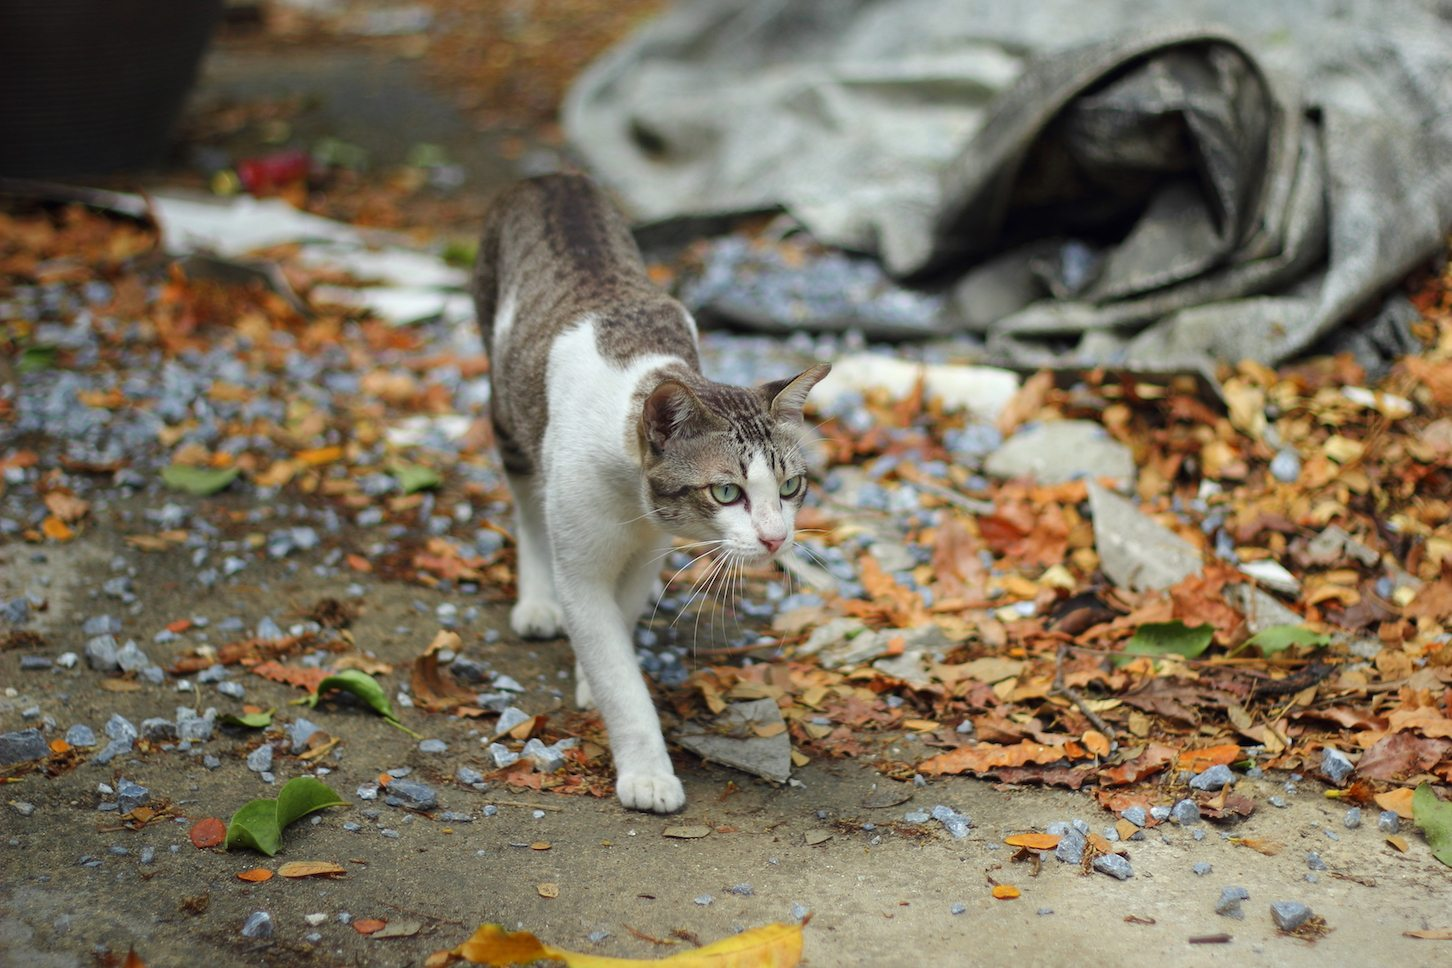 Preventing Pet Cats from Roaming.